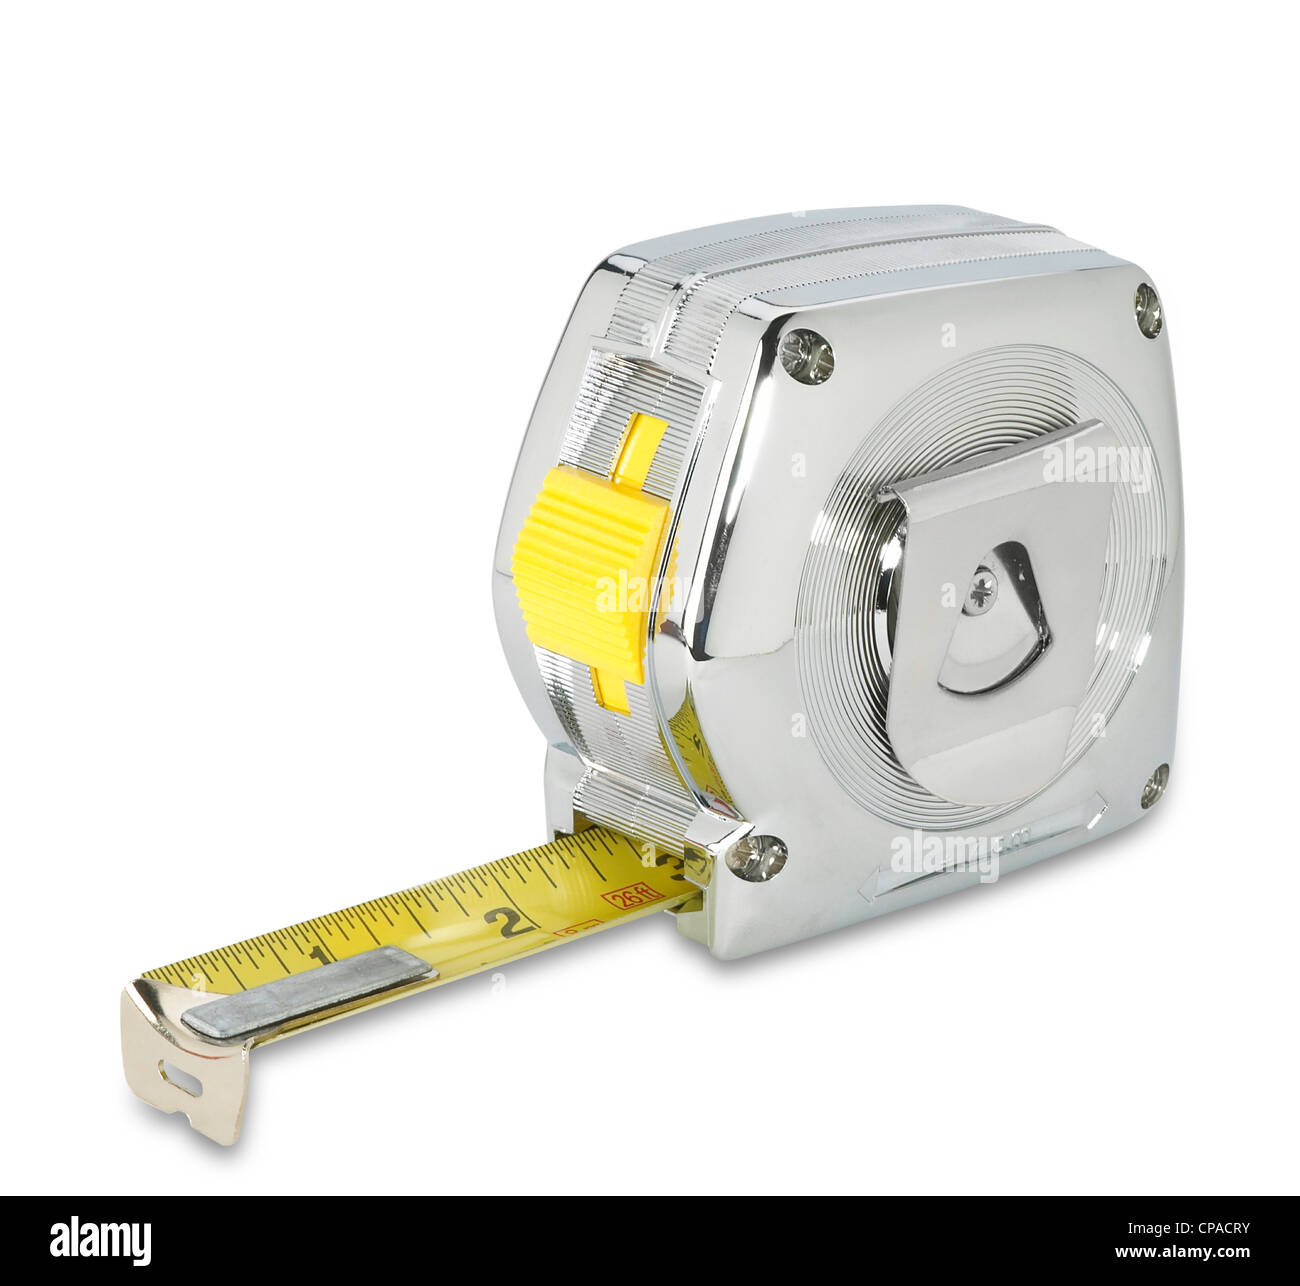 a chrome silver retro tape measure on white with clipping path - Stock Image